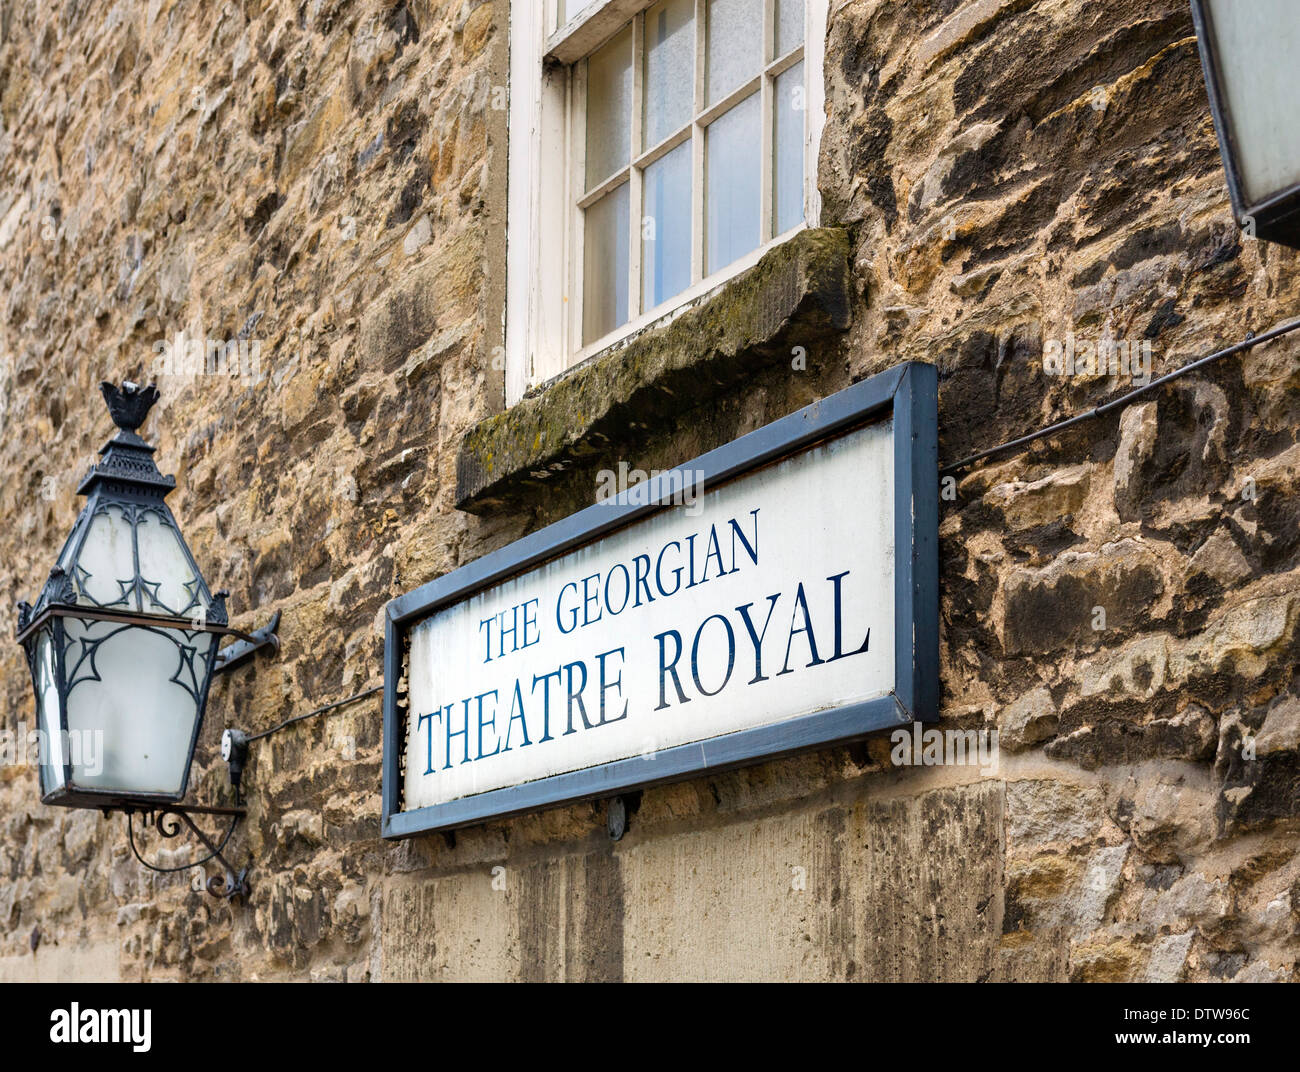 Exterior of the historic Georgian Theatre Royal, Richmond, North Yorkshire, Yorkshire Dales, England, UK, - Stock Image